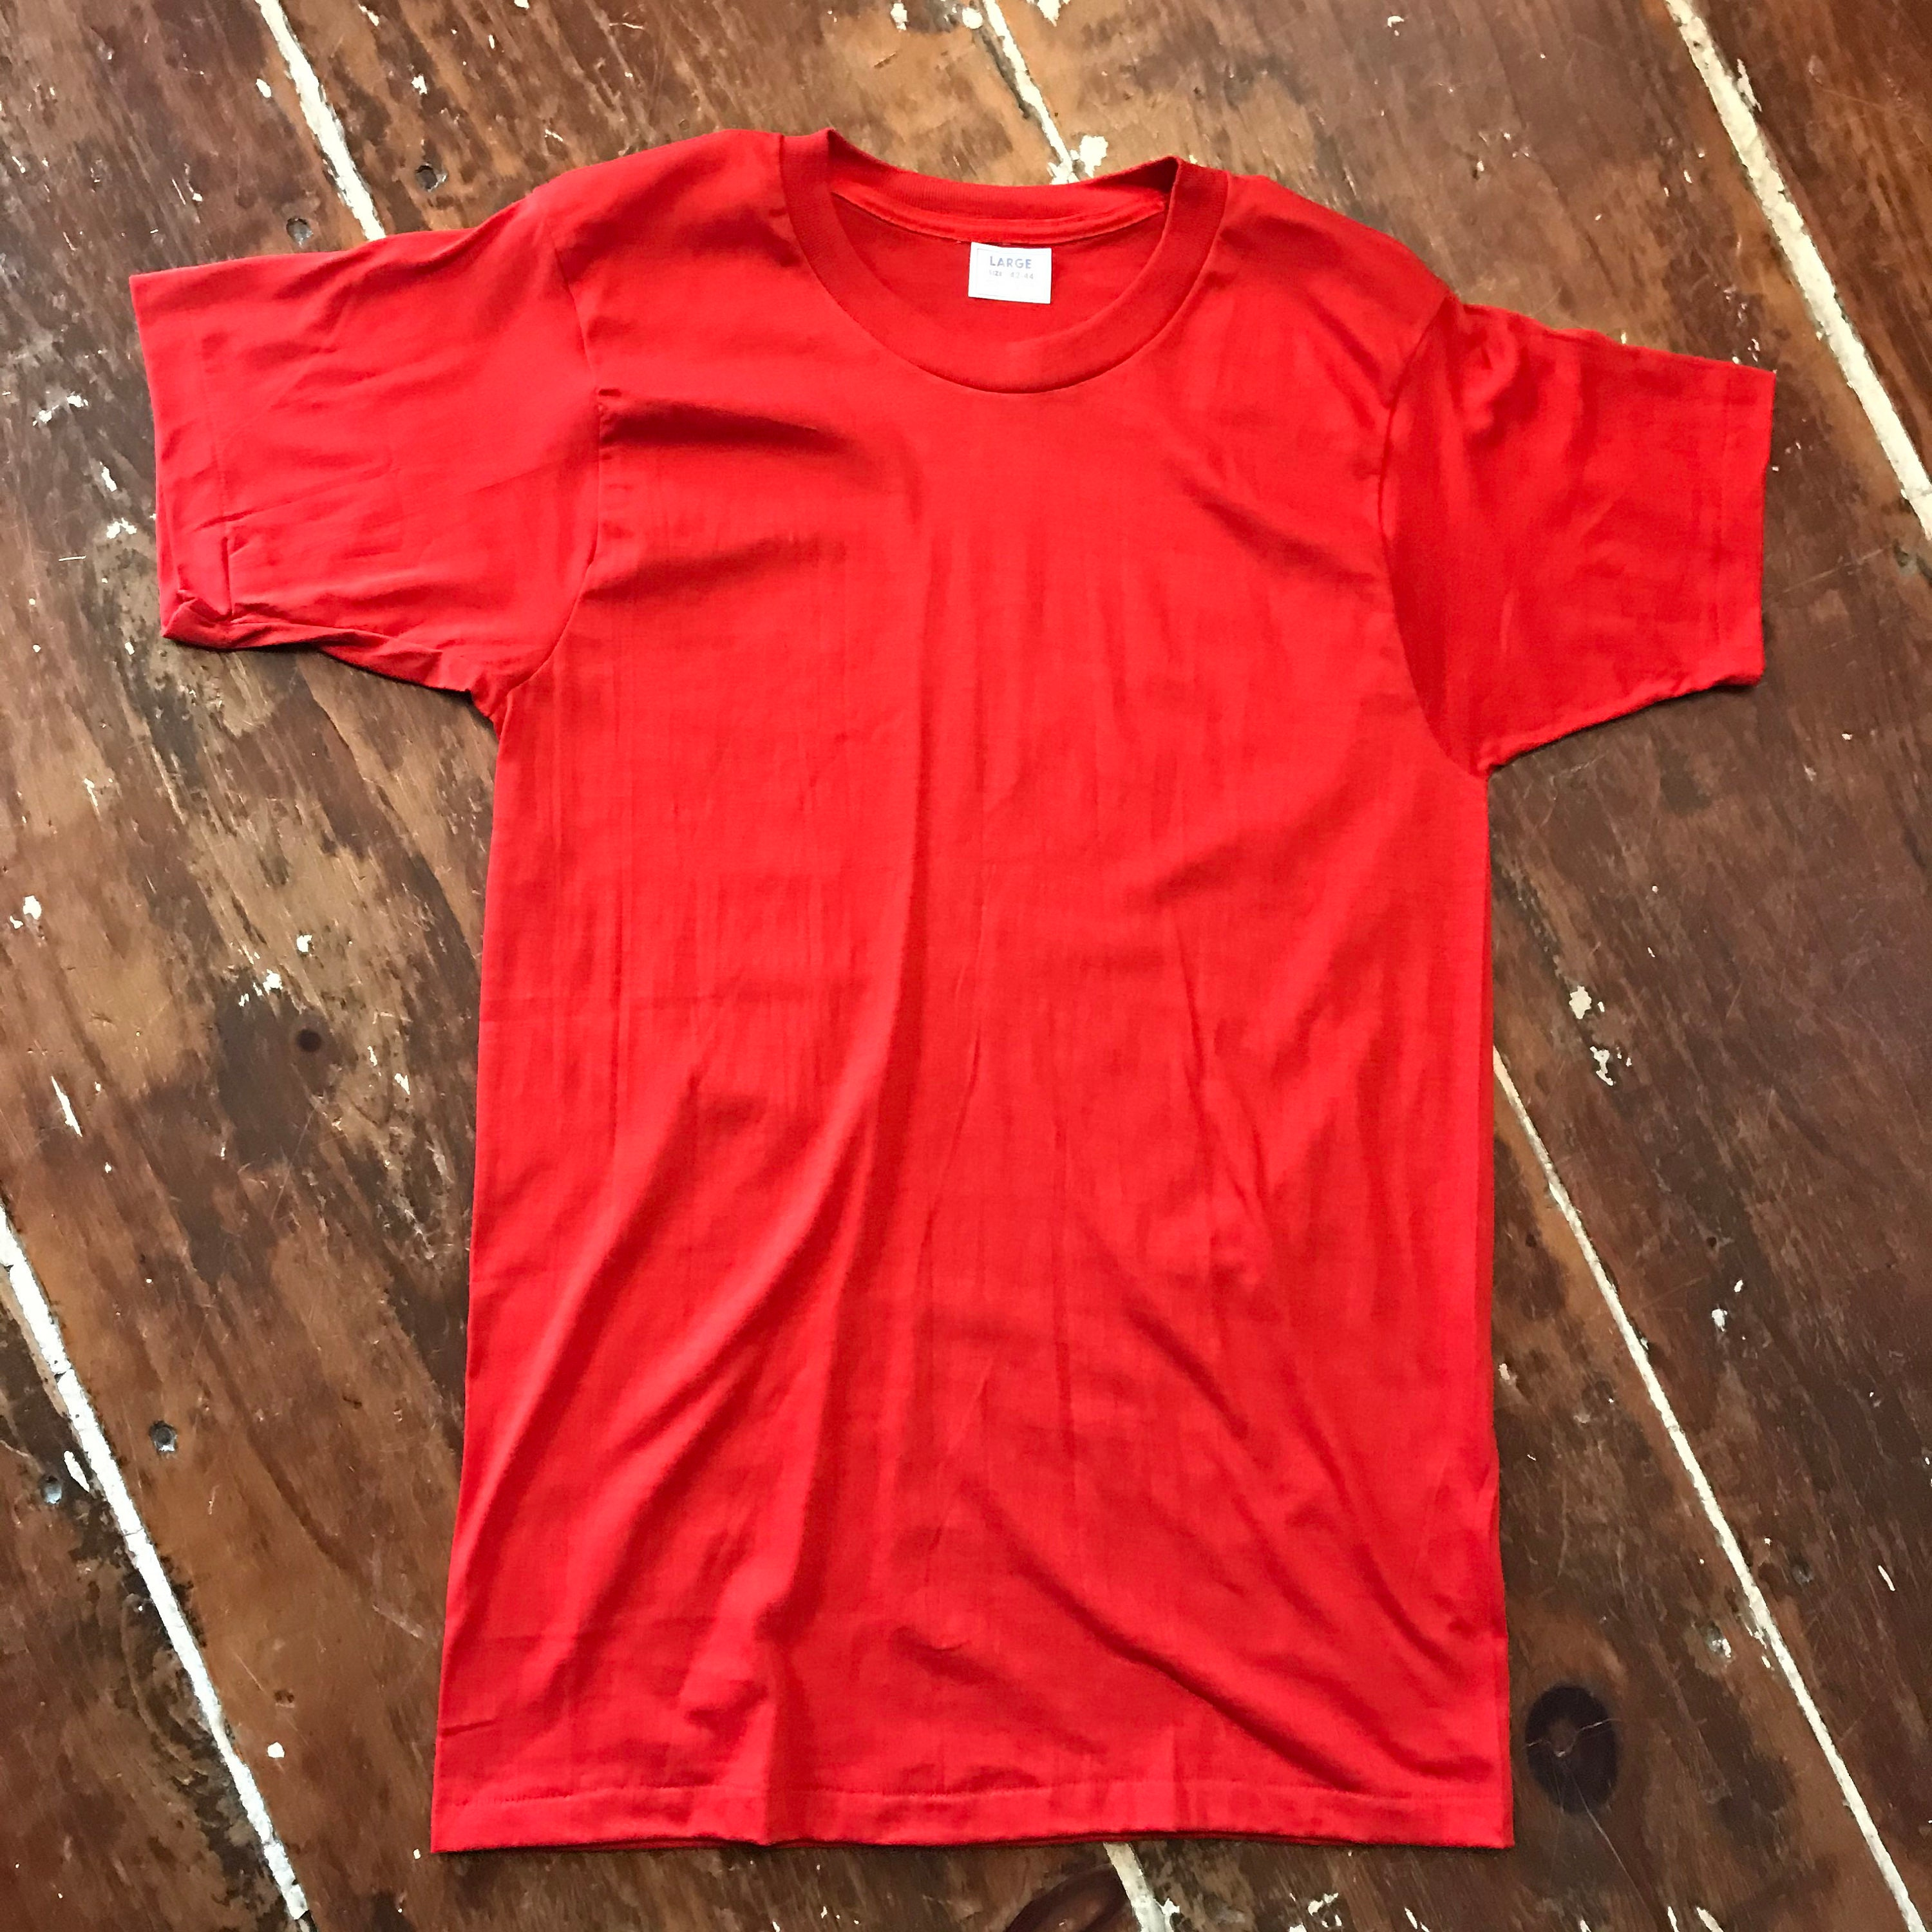 1970s Mens Shirt Styles – Vintage 70s Shirts for Guys Vintage 70S Fruit Of The Loom Nos T-Shirt Mens Small Red 50-50 Crew Neck $22.00 AT vintagedancer.com